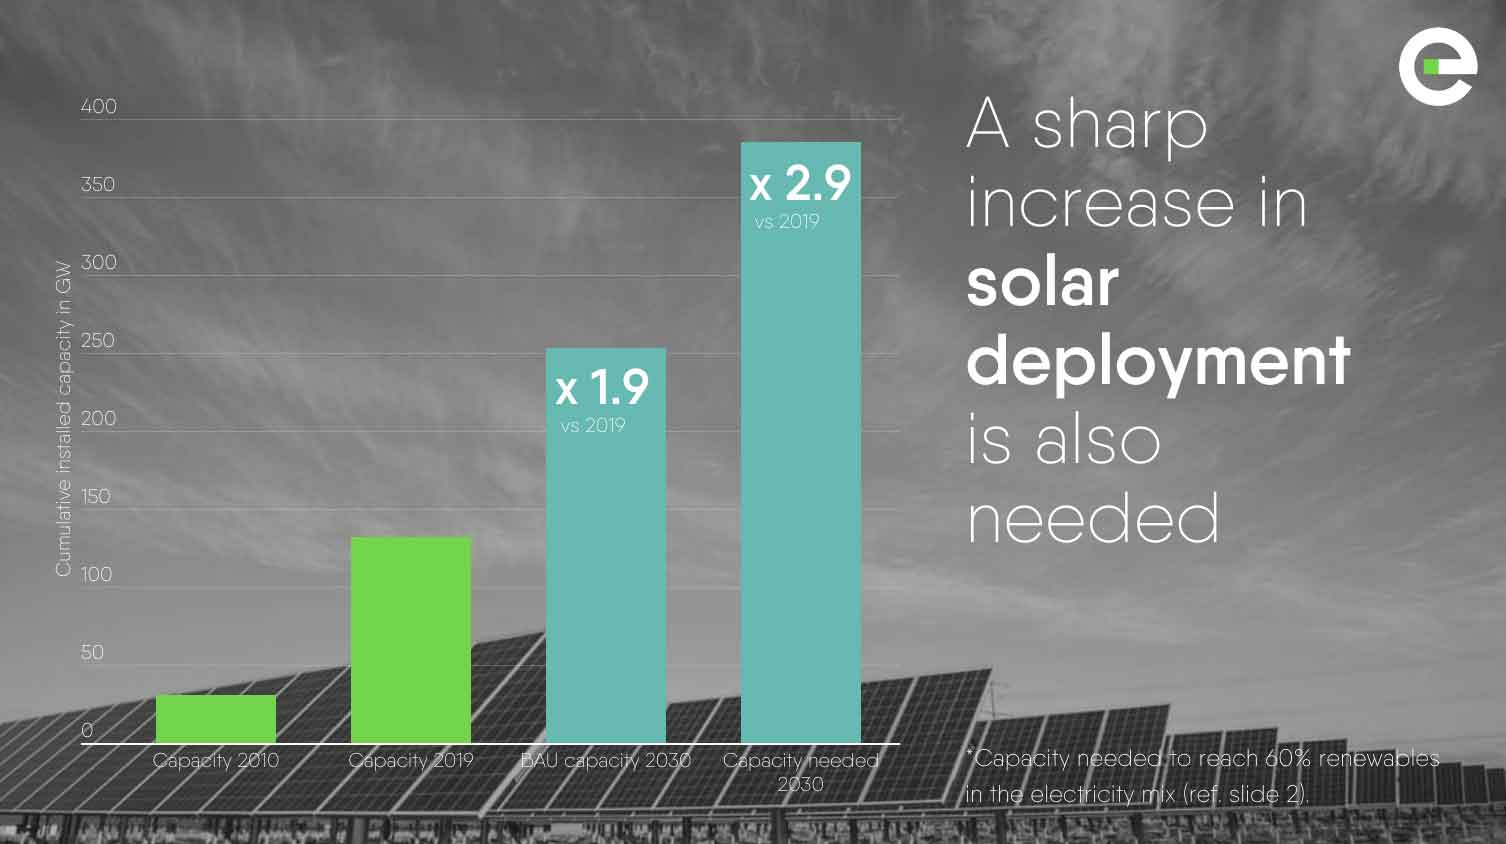 Power Barometer 2020: a sharp increase in solar deployment is also needed